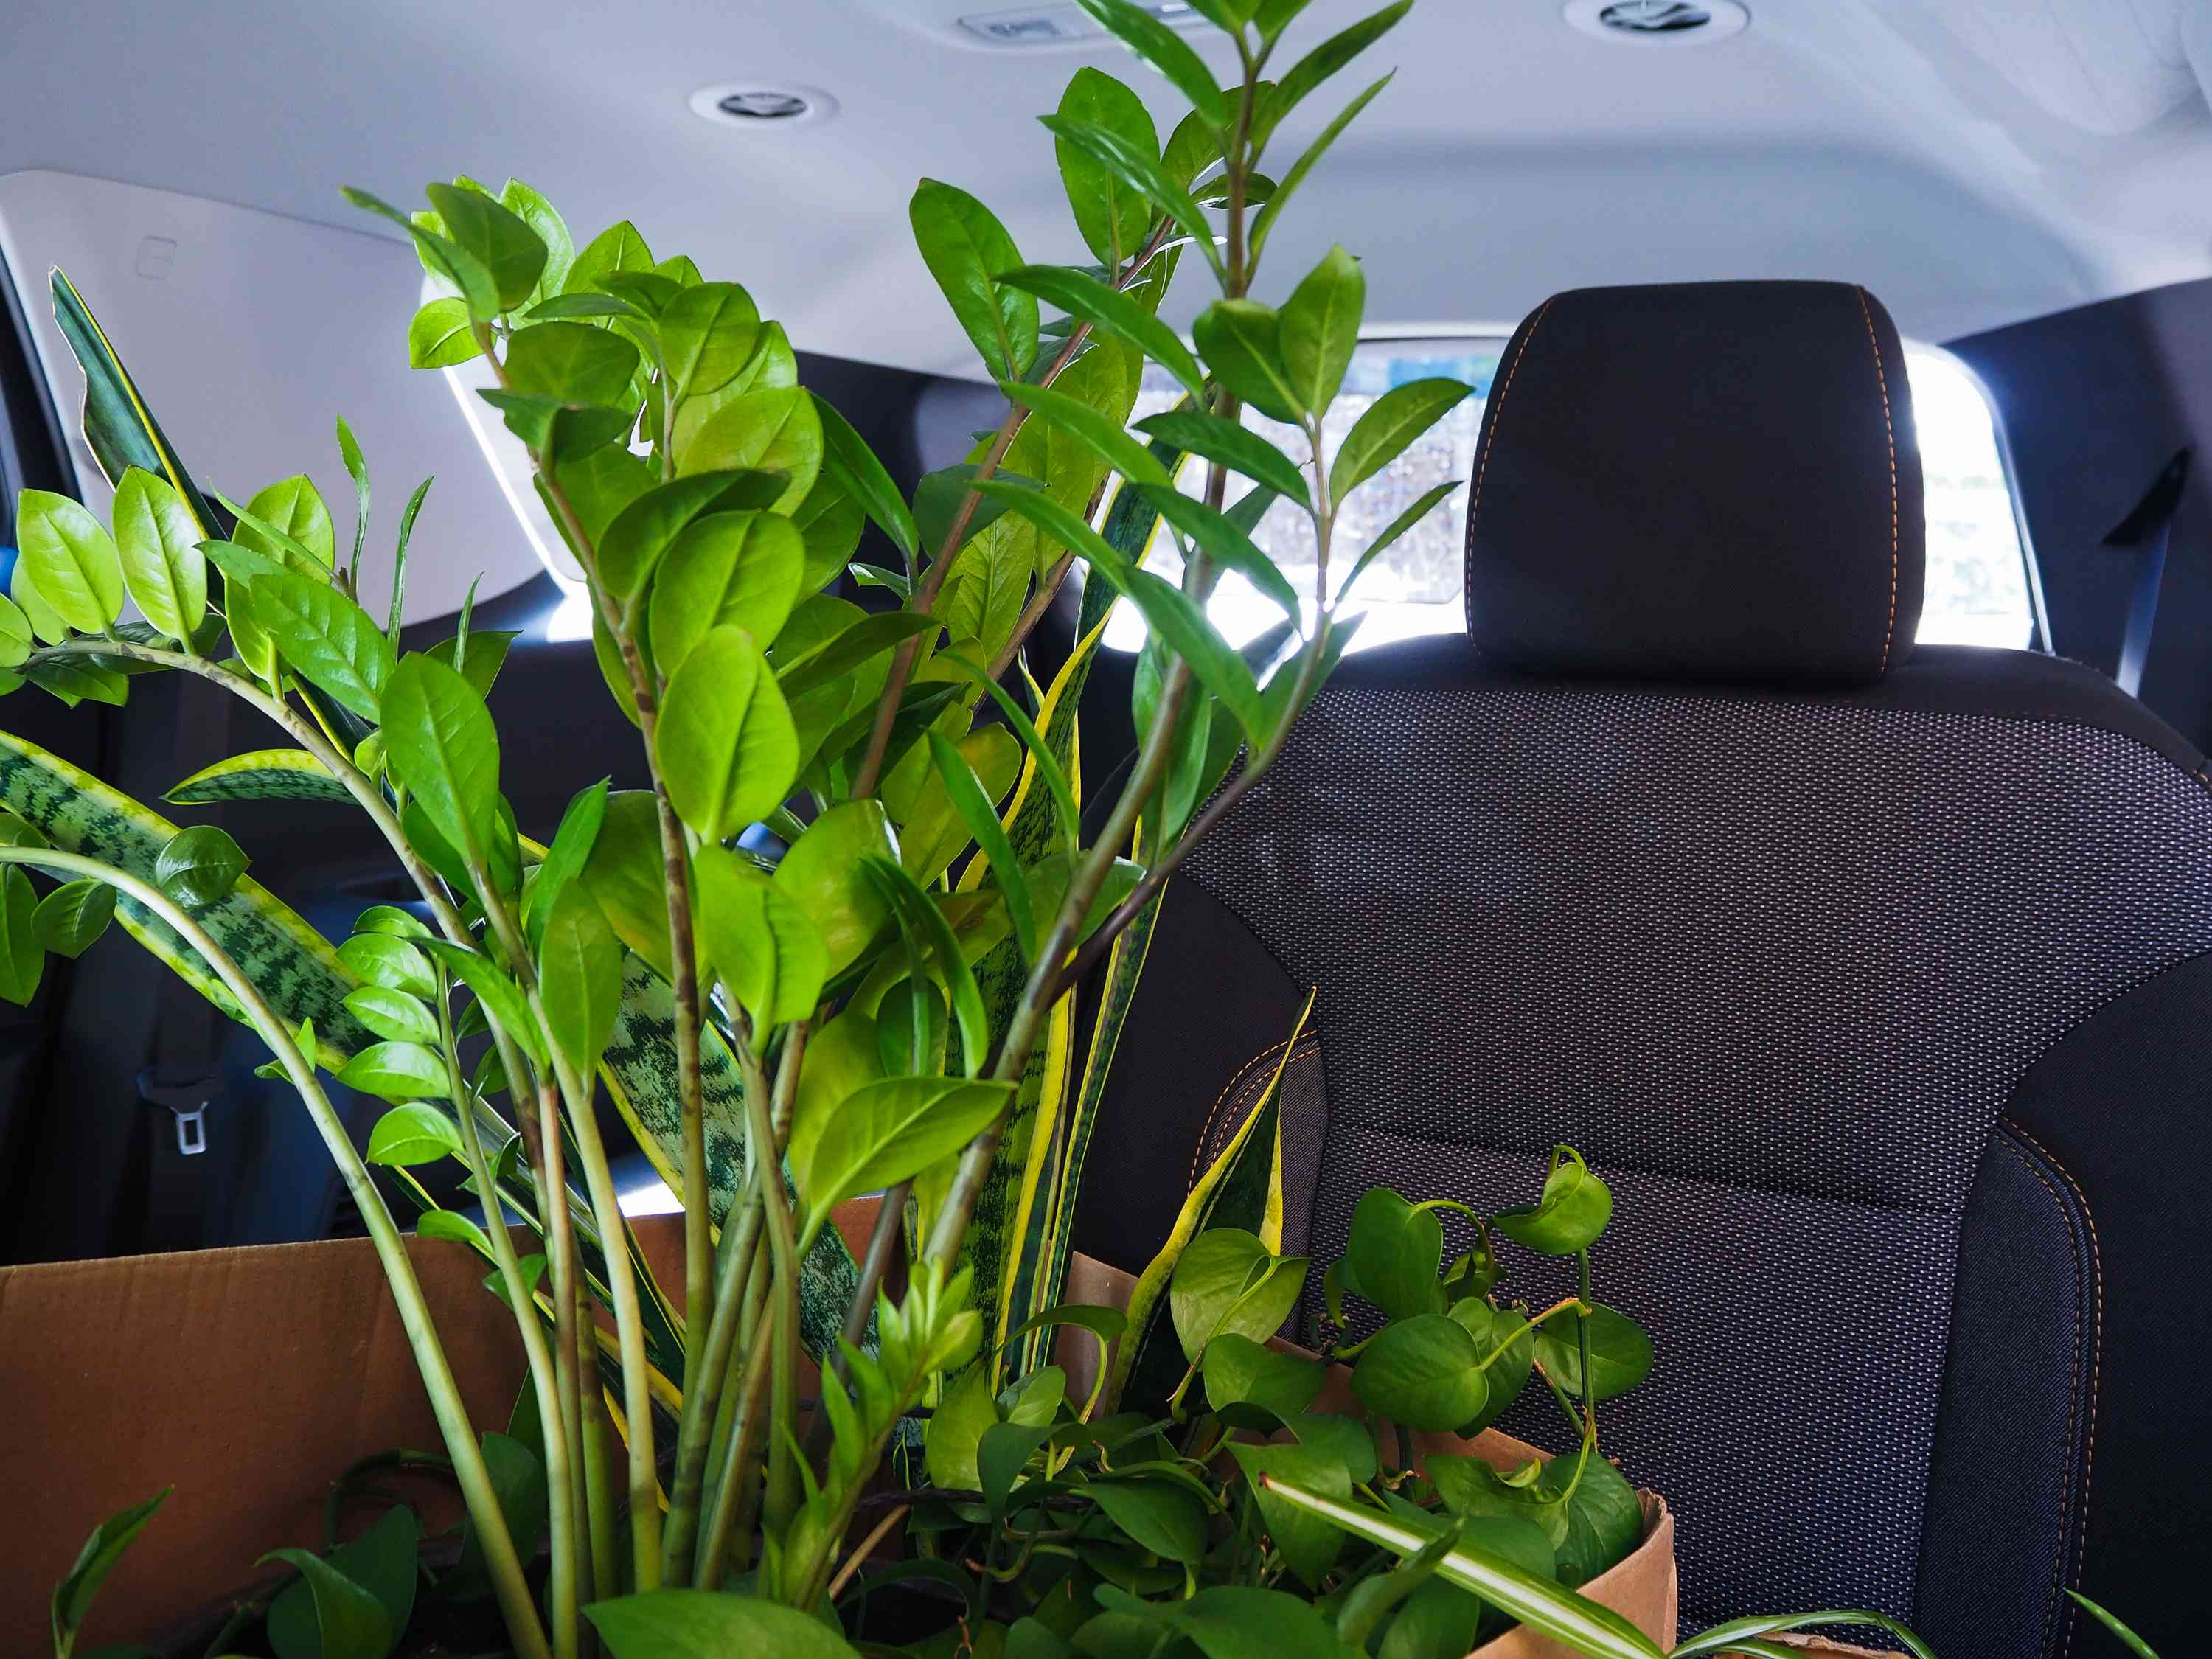 Moving houseplants in a box in the backseat of a car